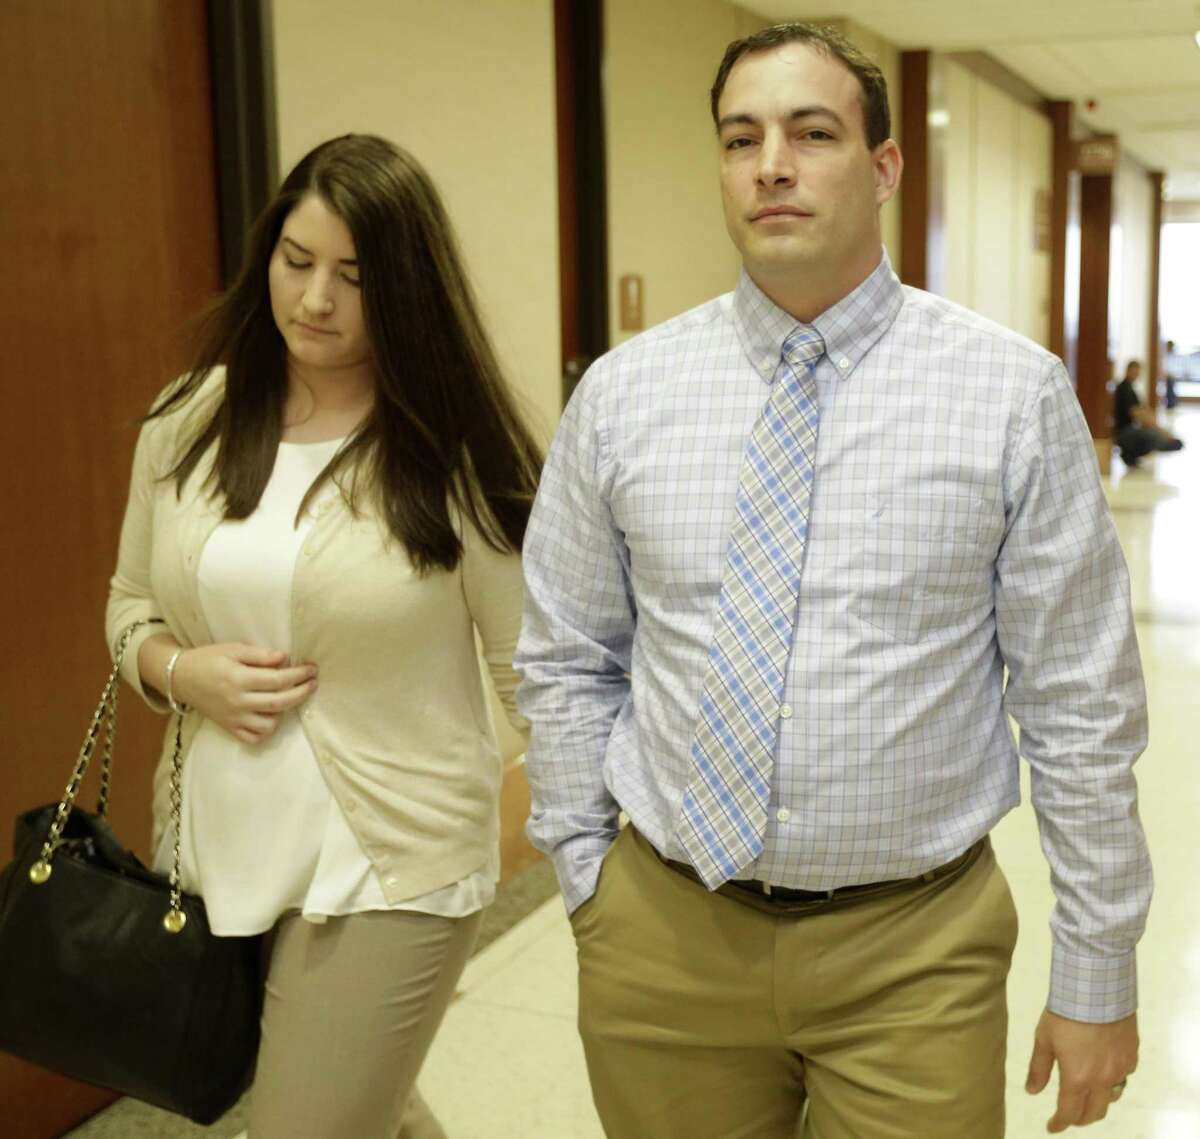 Blaine Boudreaux, right, leaves fom the 177th state District Court at the Harris County Criminal Courthouse, 1201 Franklin, Wednesday, Aug. 26, 2015, in Houston. He is accused of causing four crashes in one day earlier this summer-two of them fatal. ( Melissa Phillip / Houston Chronicle )